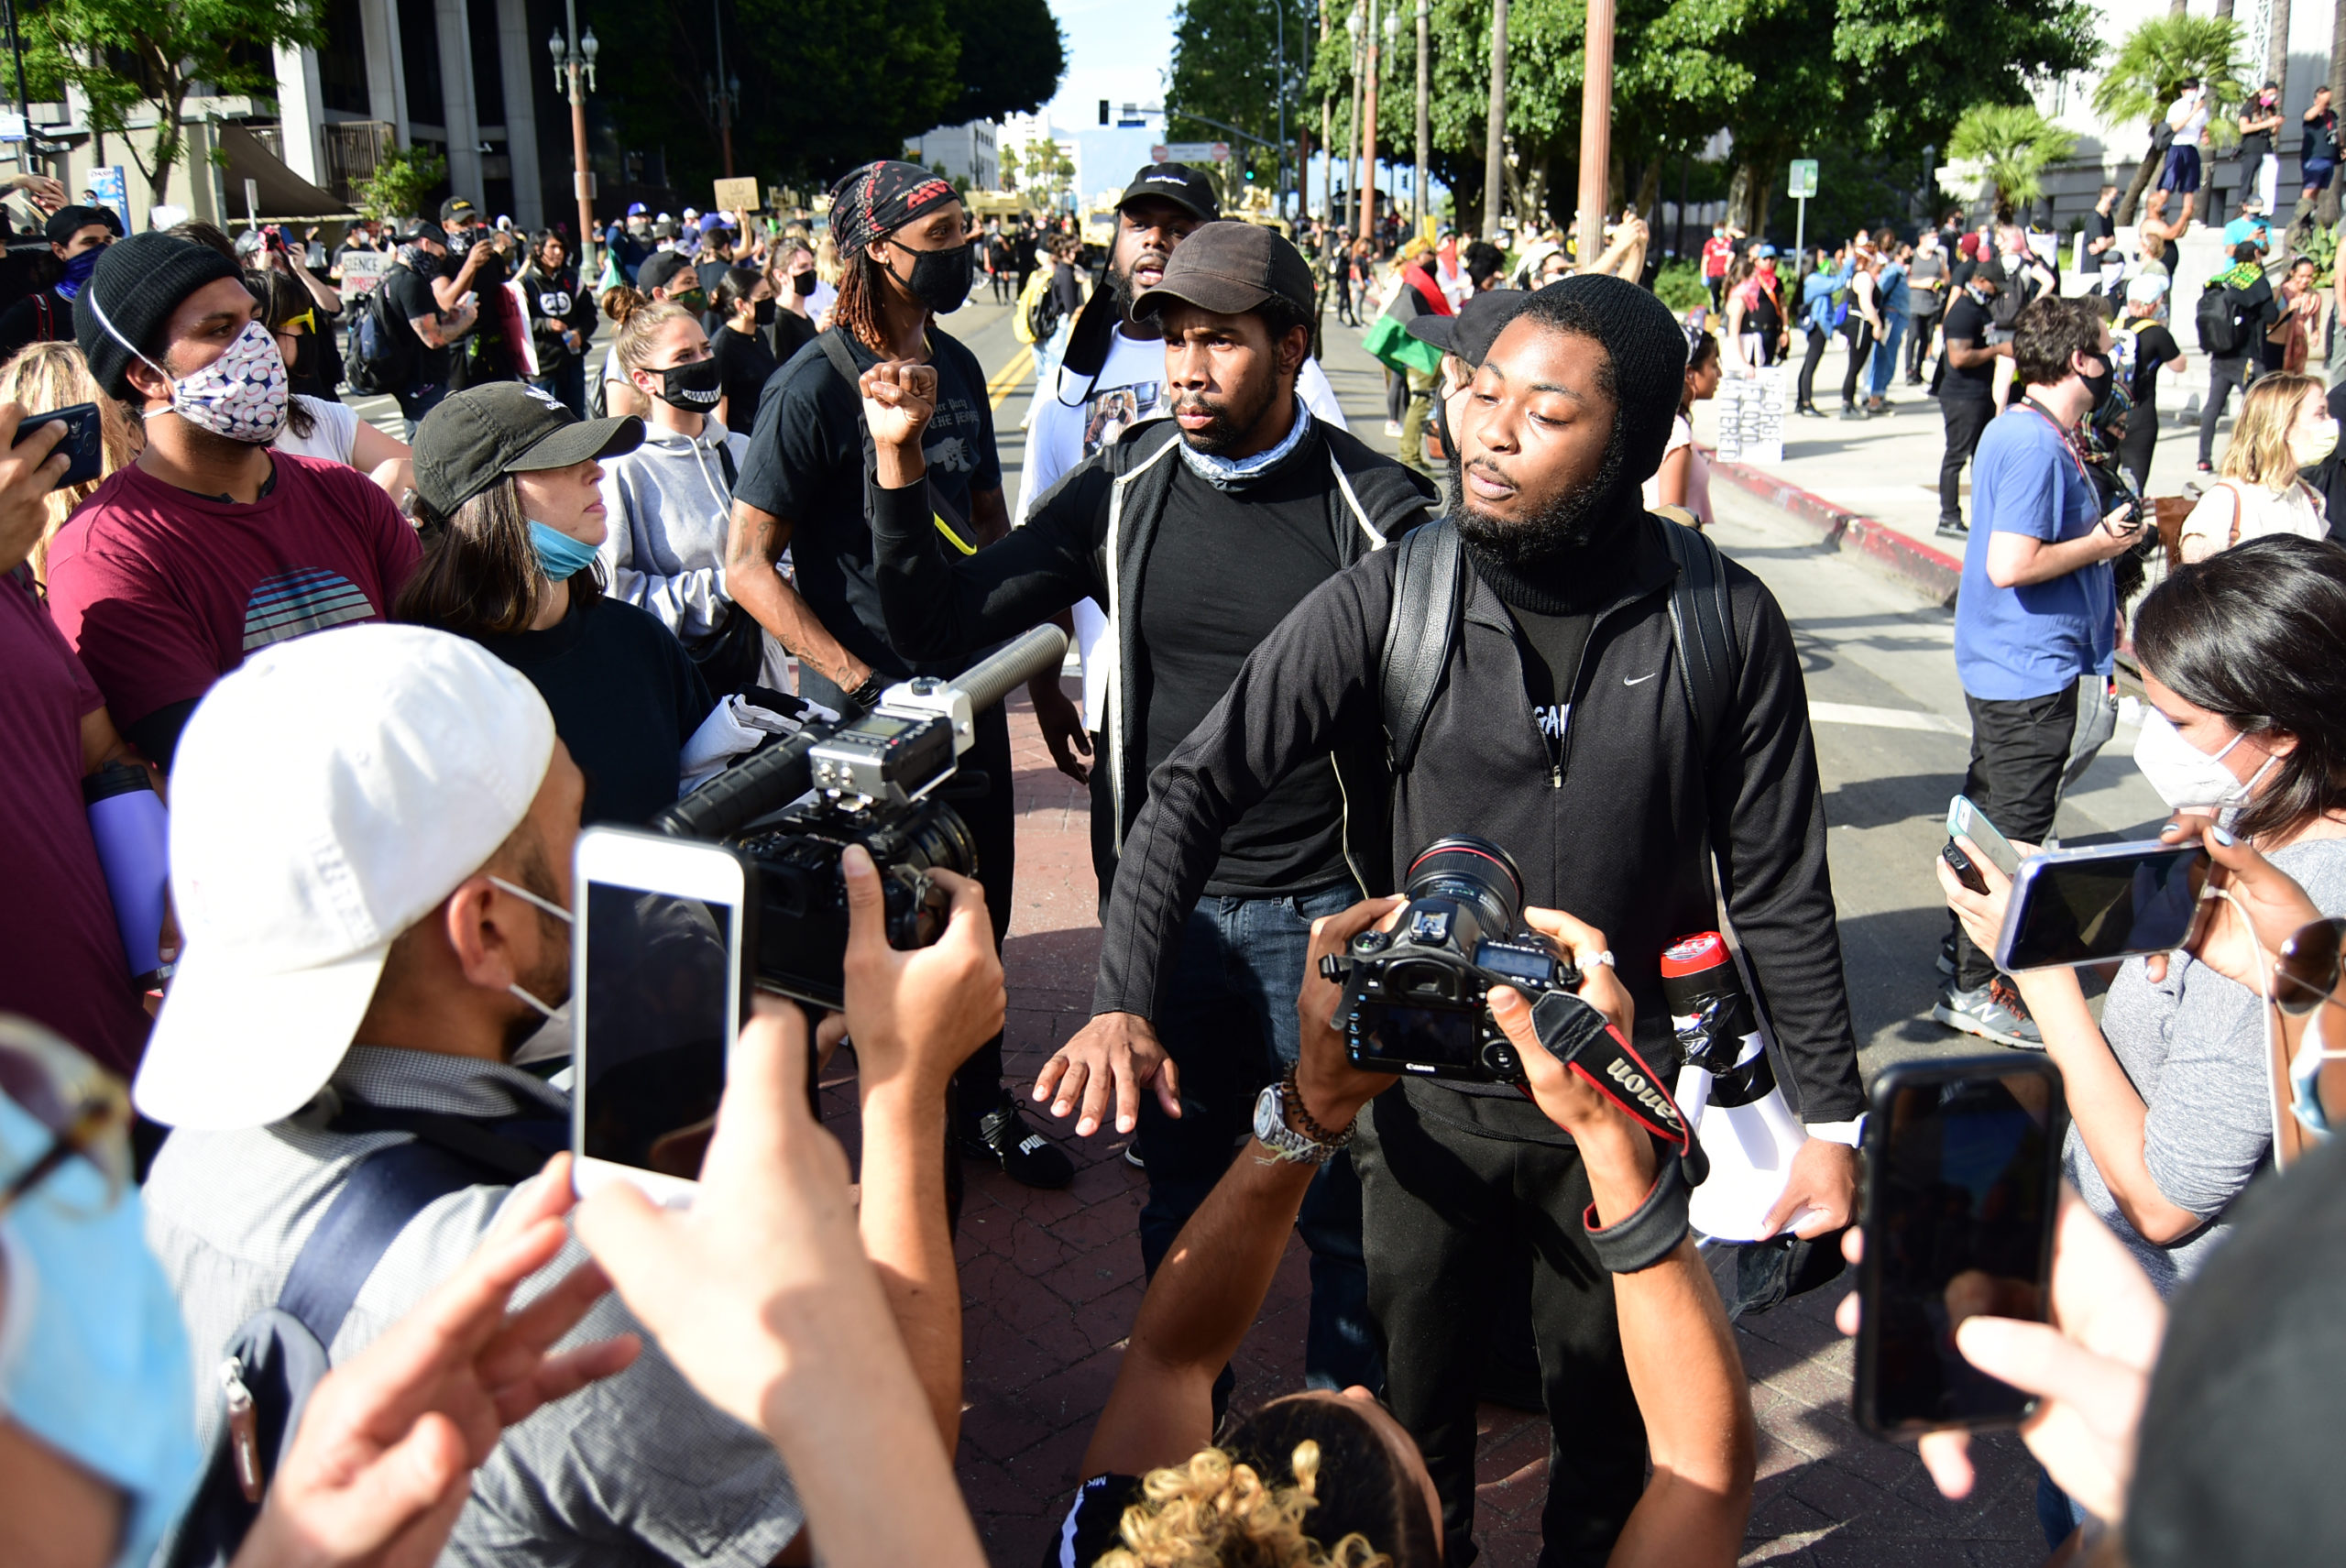 south-pasadena-news-05-31-2020-george-floyd-blm-black-lives-matter-protests-los-angeles-day-2-71